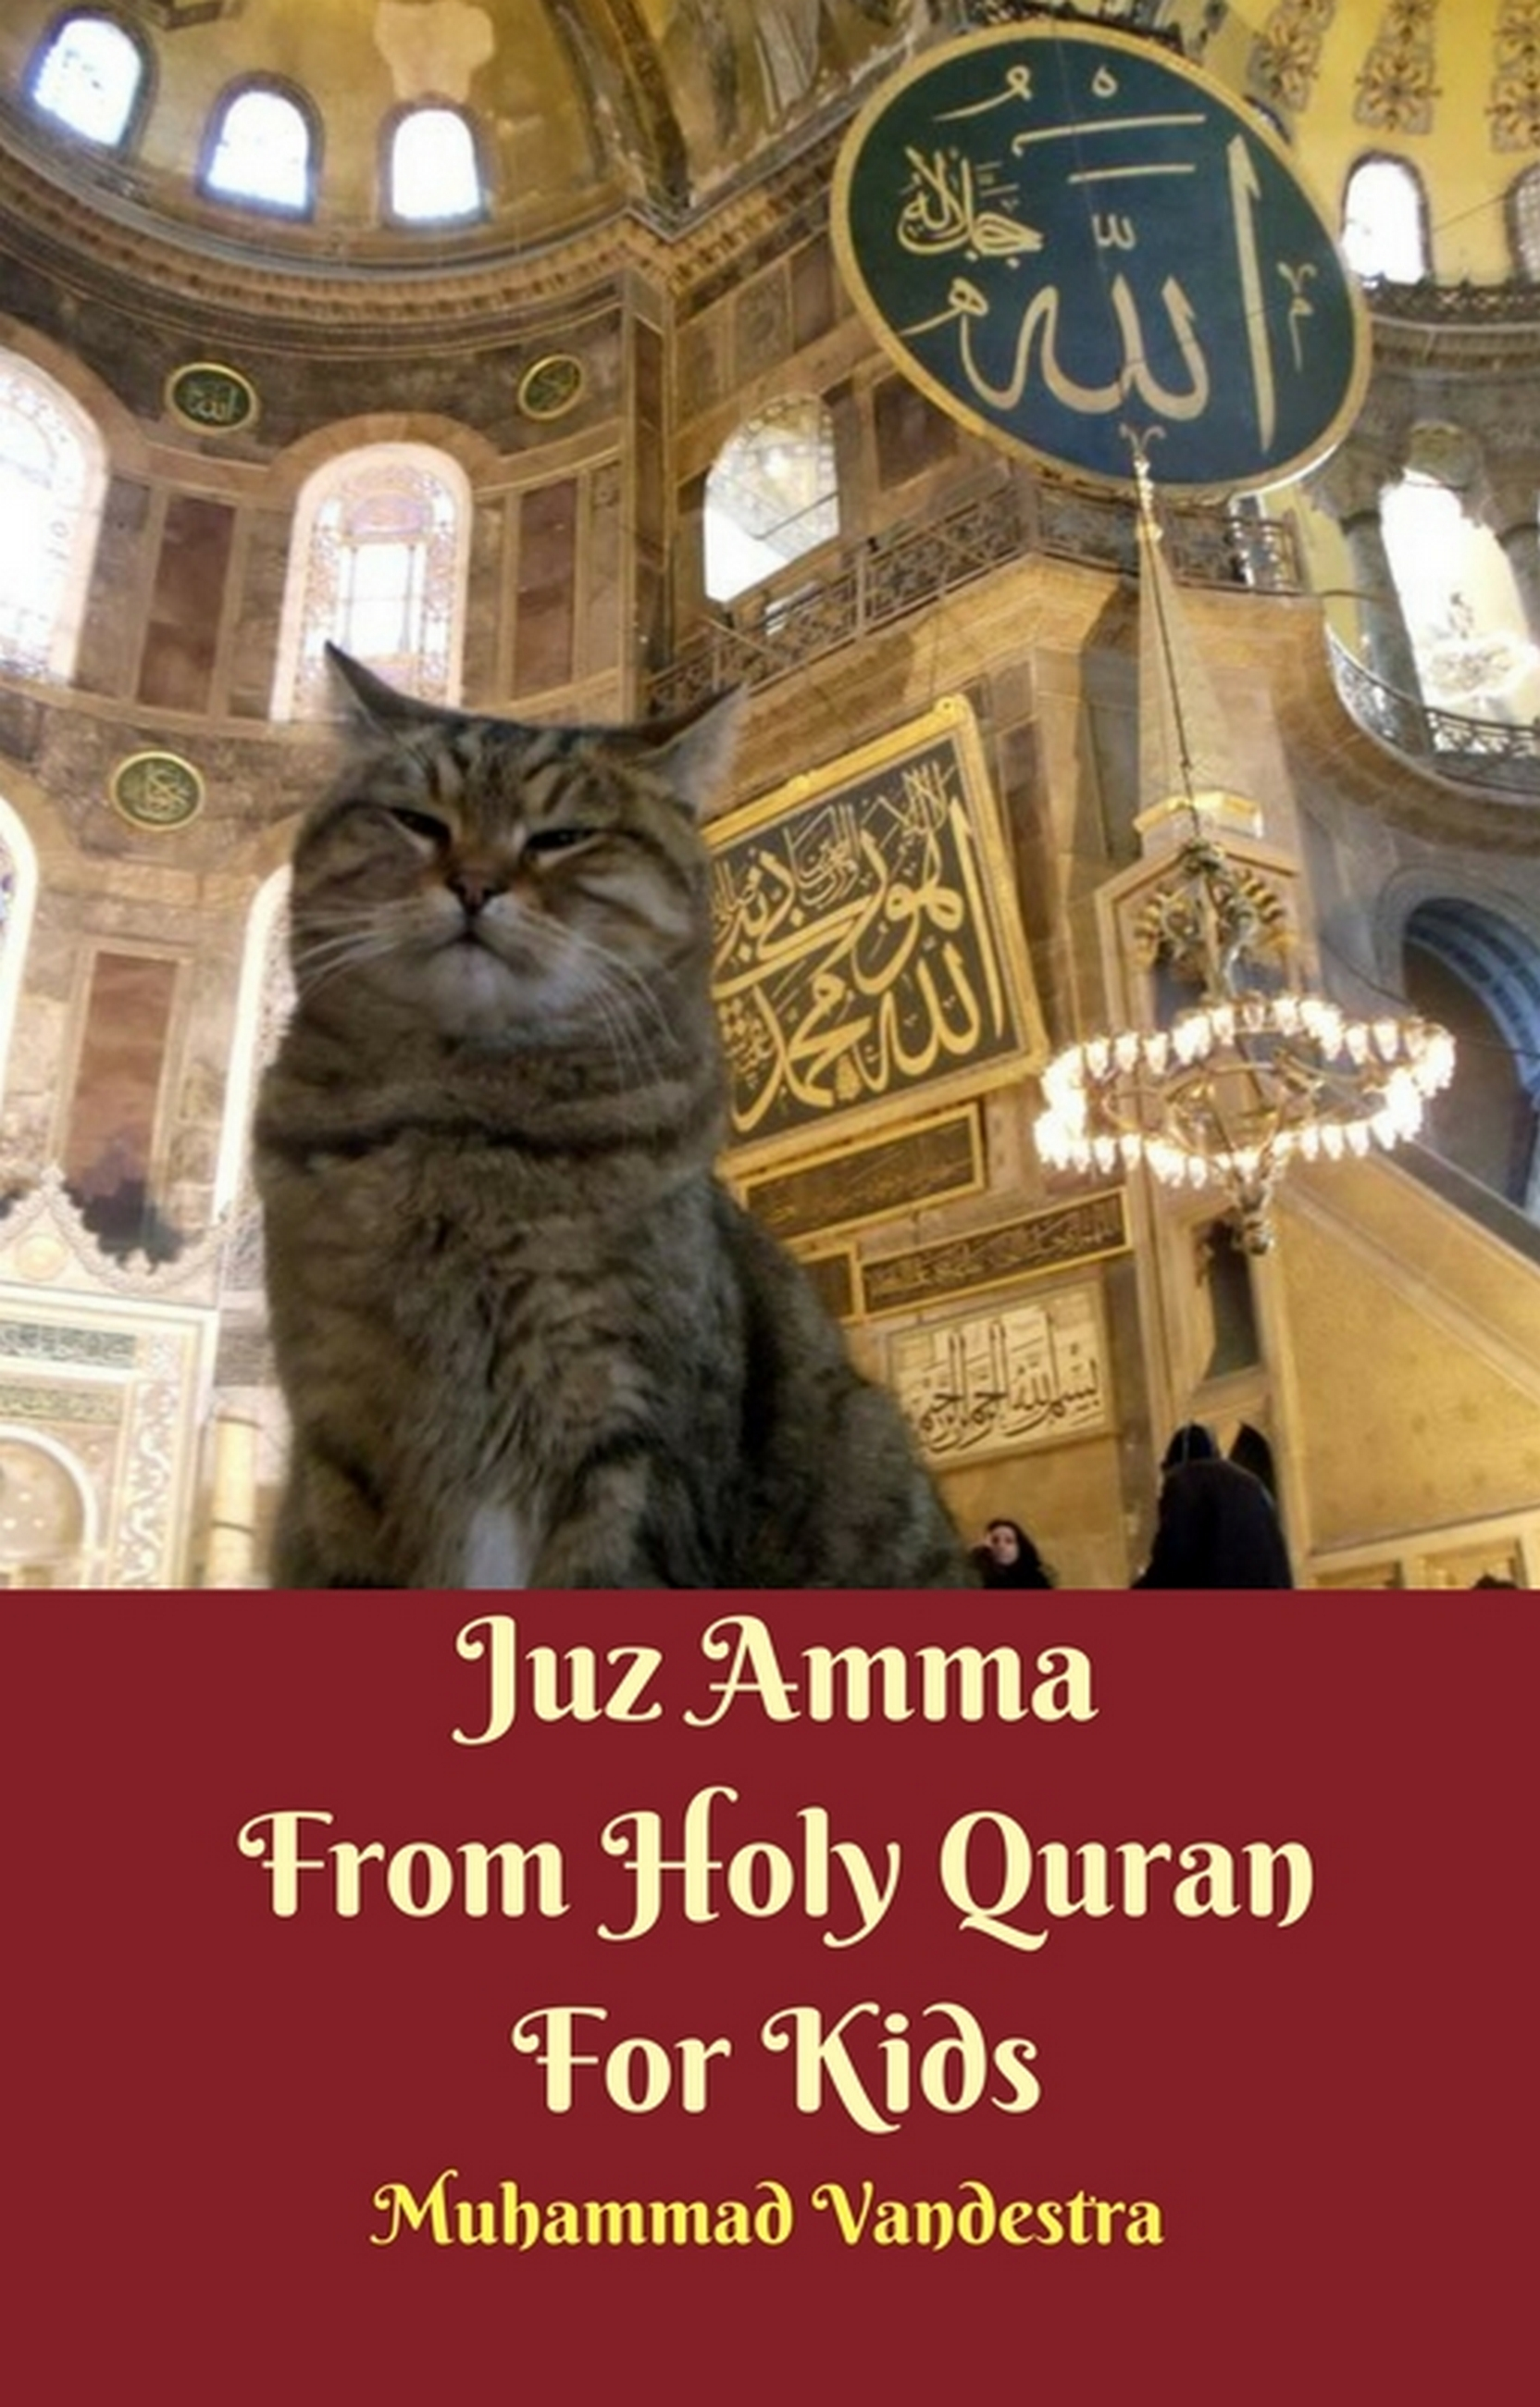 Juz Amma From Holy Quran For Kids By Muhammad Vandestra